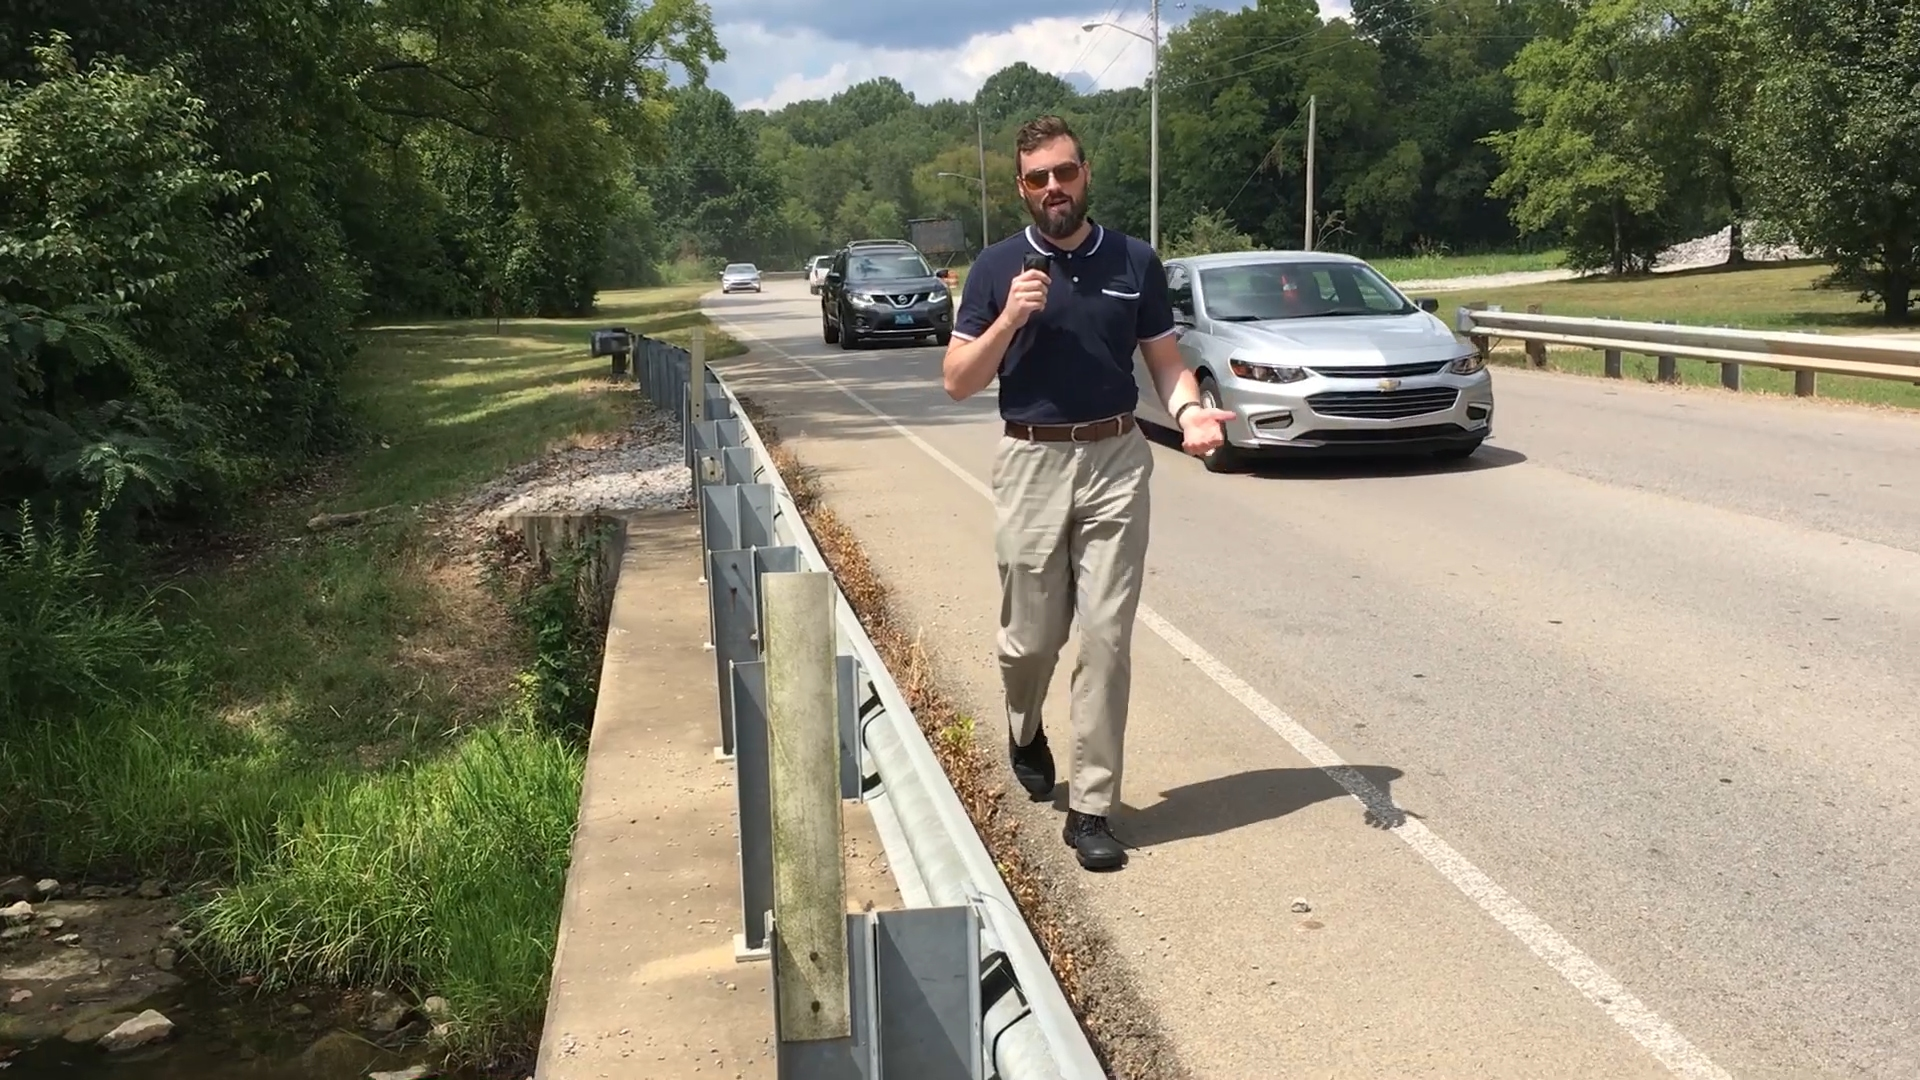 VIDEO: Spring Hill continues to suffer a walkability problem with its lack of sidewalks